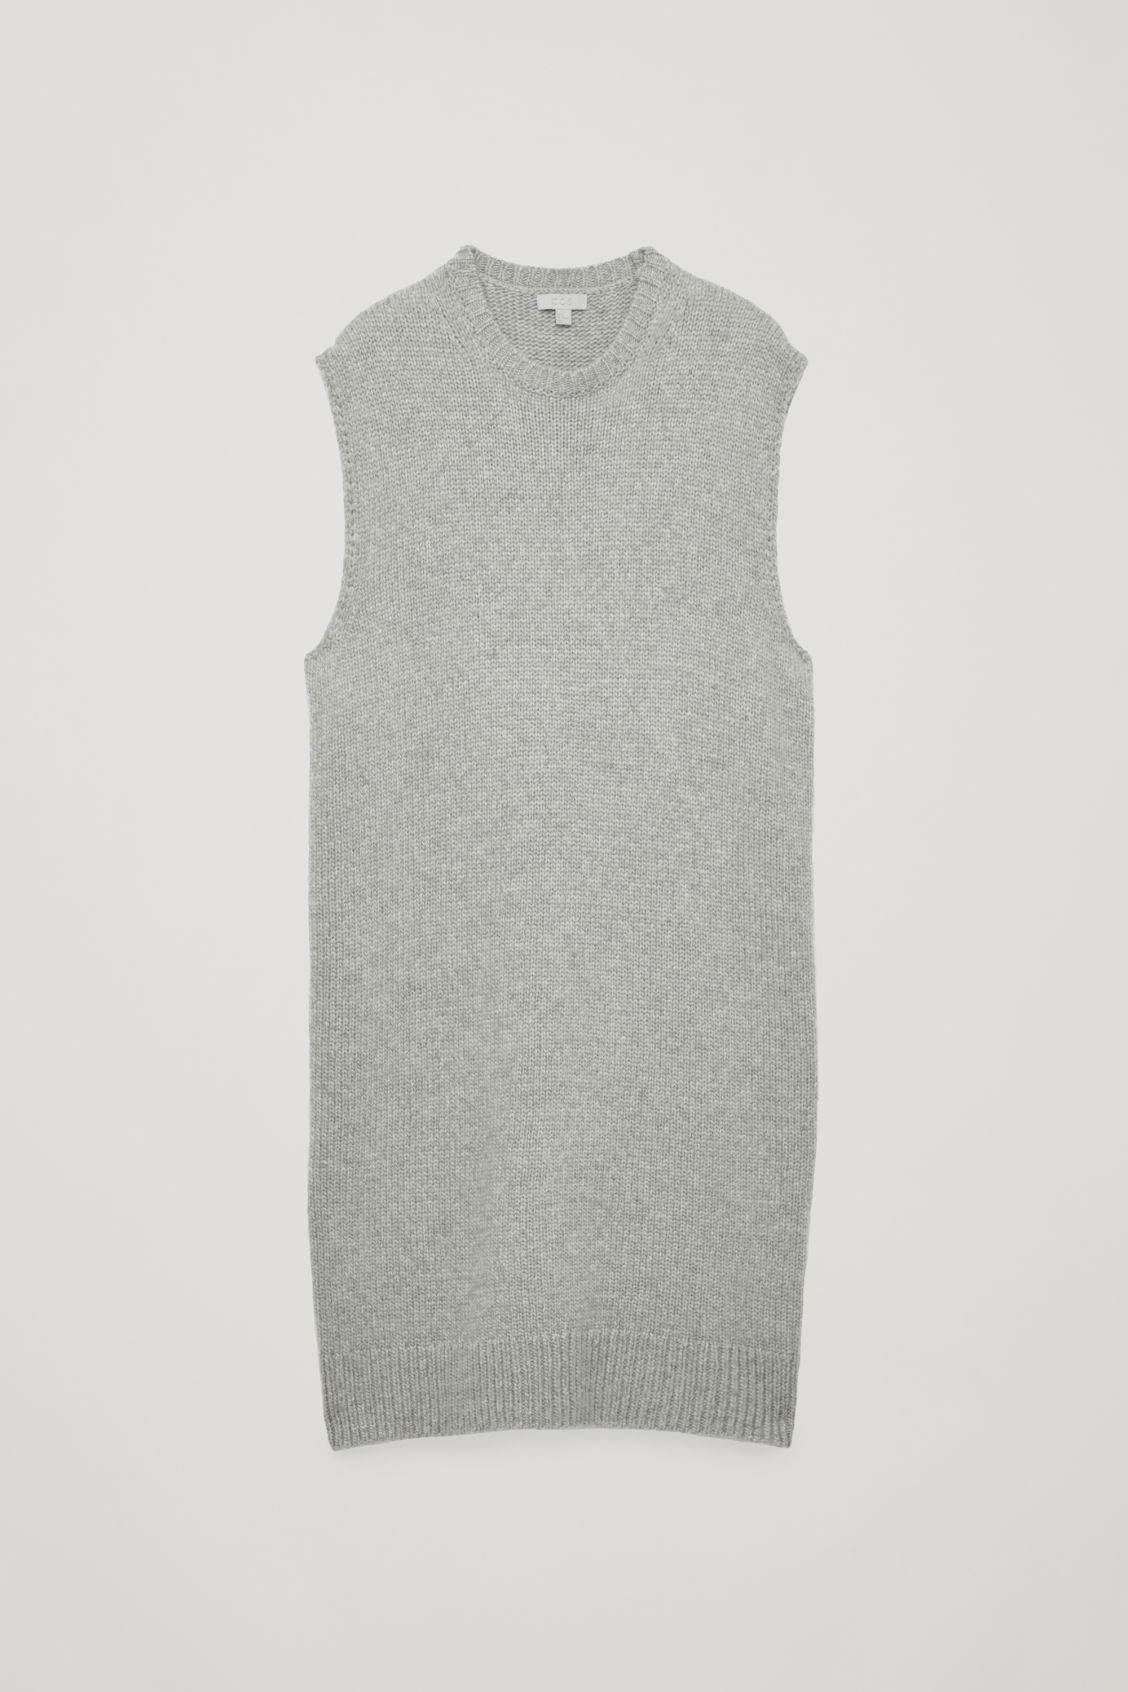 LONG SLEEVELESS KNITTED TOP